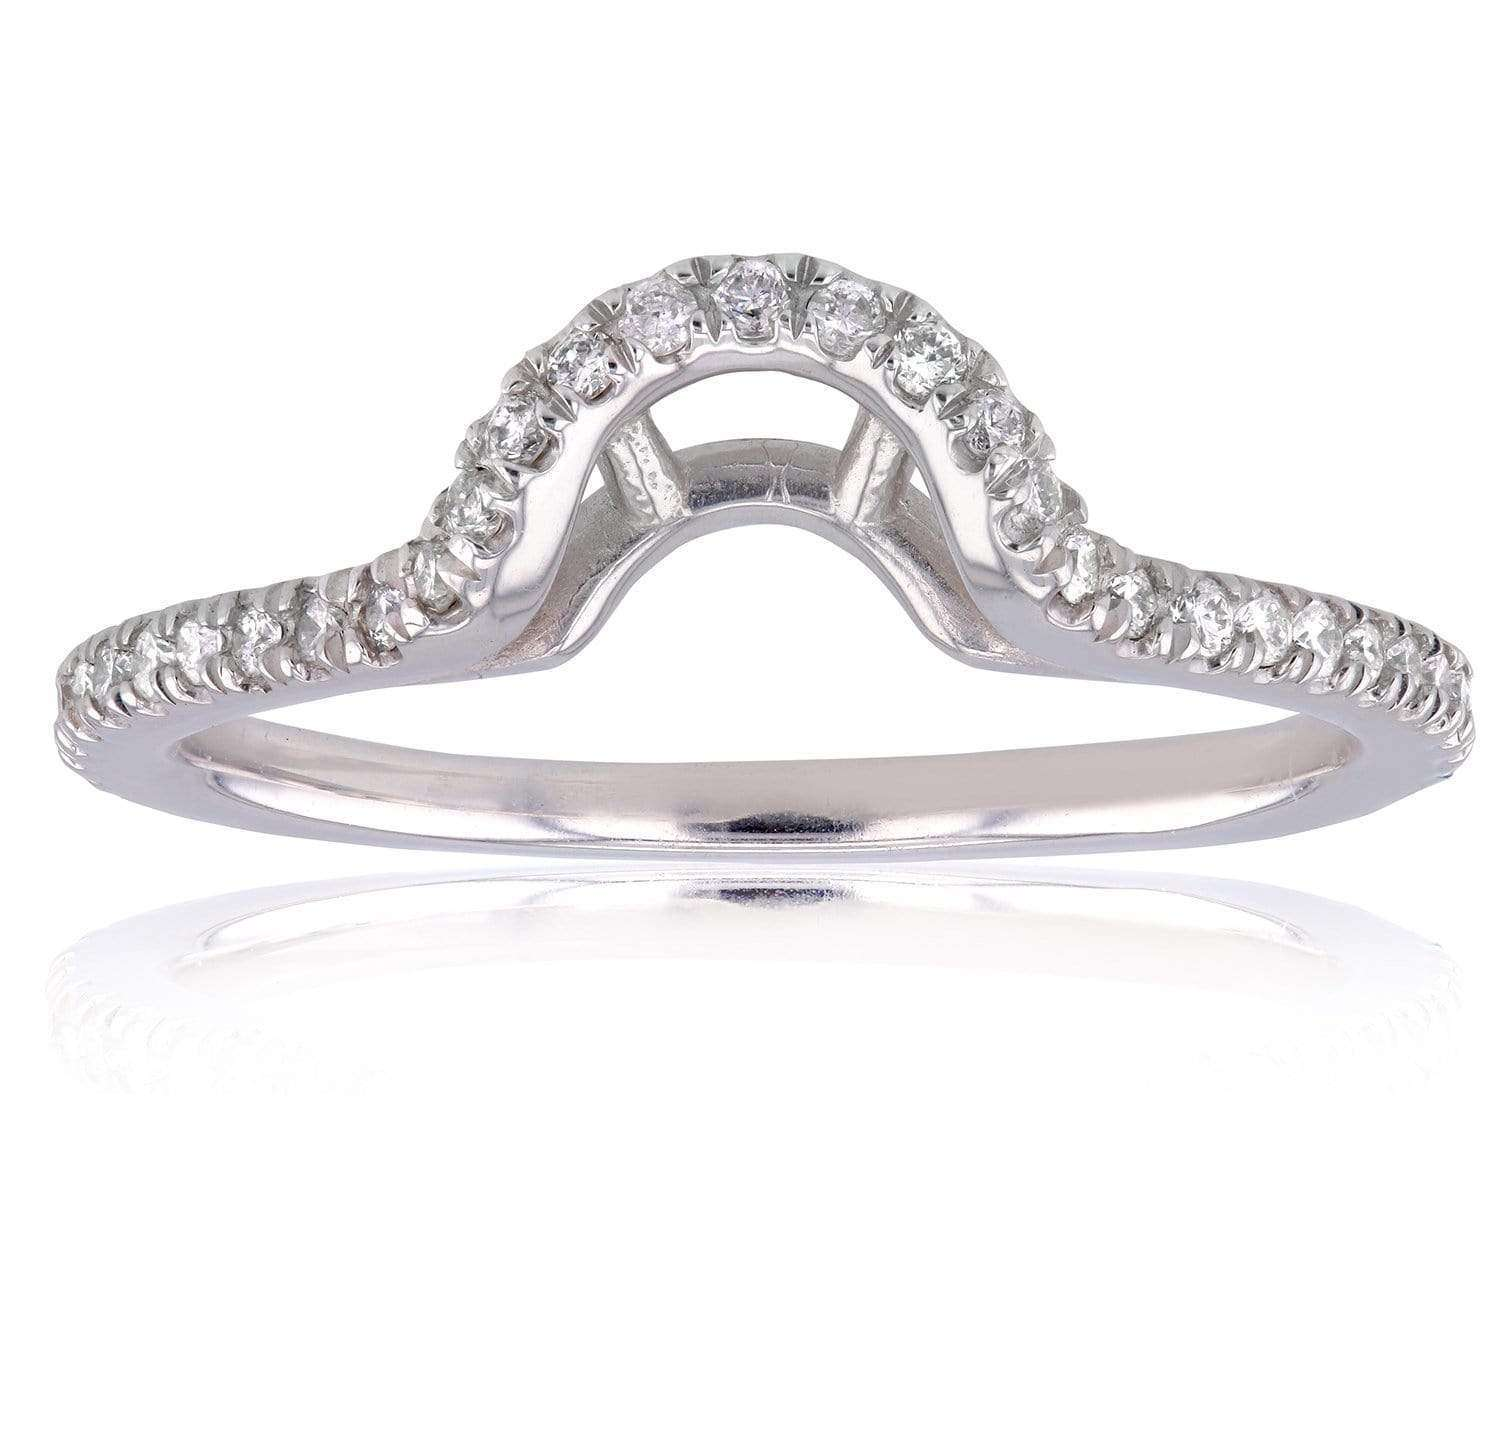 Discounts Oval Contoured Diamond Wedding Band 1/5 CTW in 14k White Gold - 4